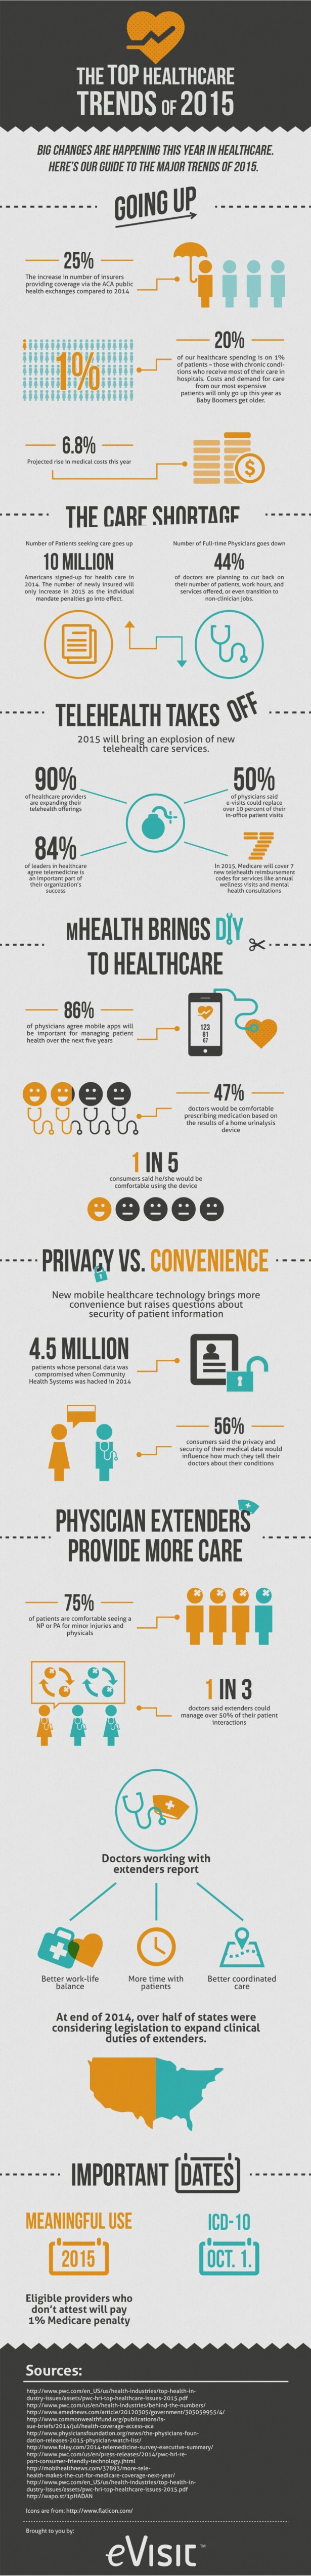 Top-Healthcare-Trends-of-2015-Infographic